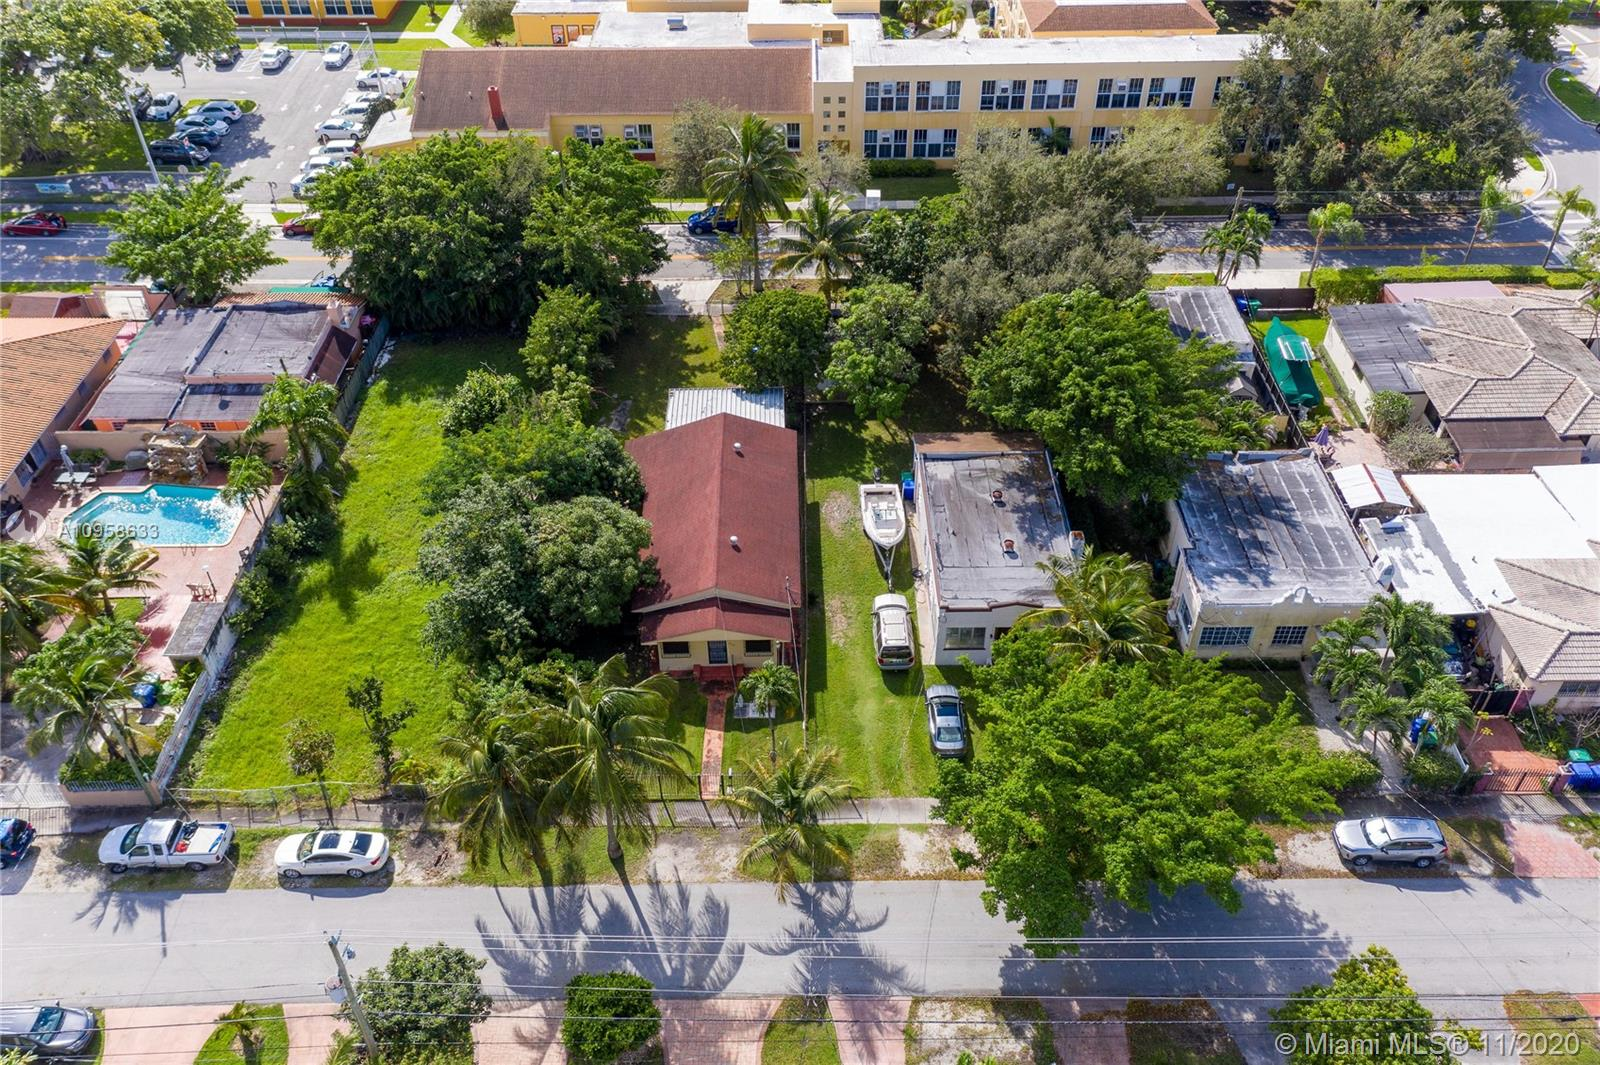 Location, Location, Location. Centrally located home nestled between Coconut Grove & the City of Coral Gables.